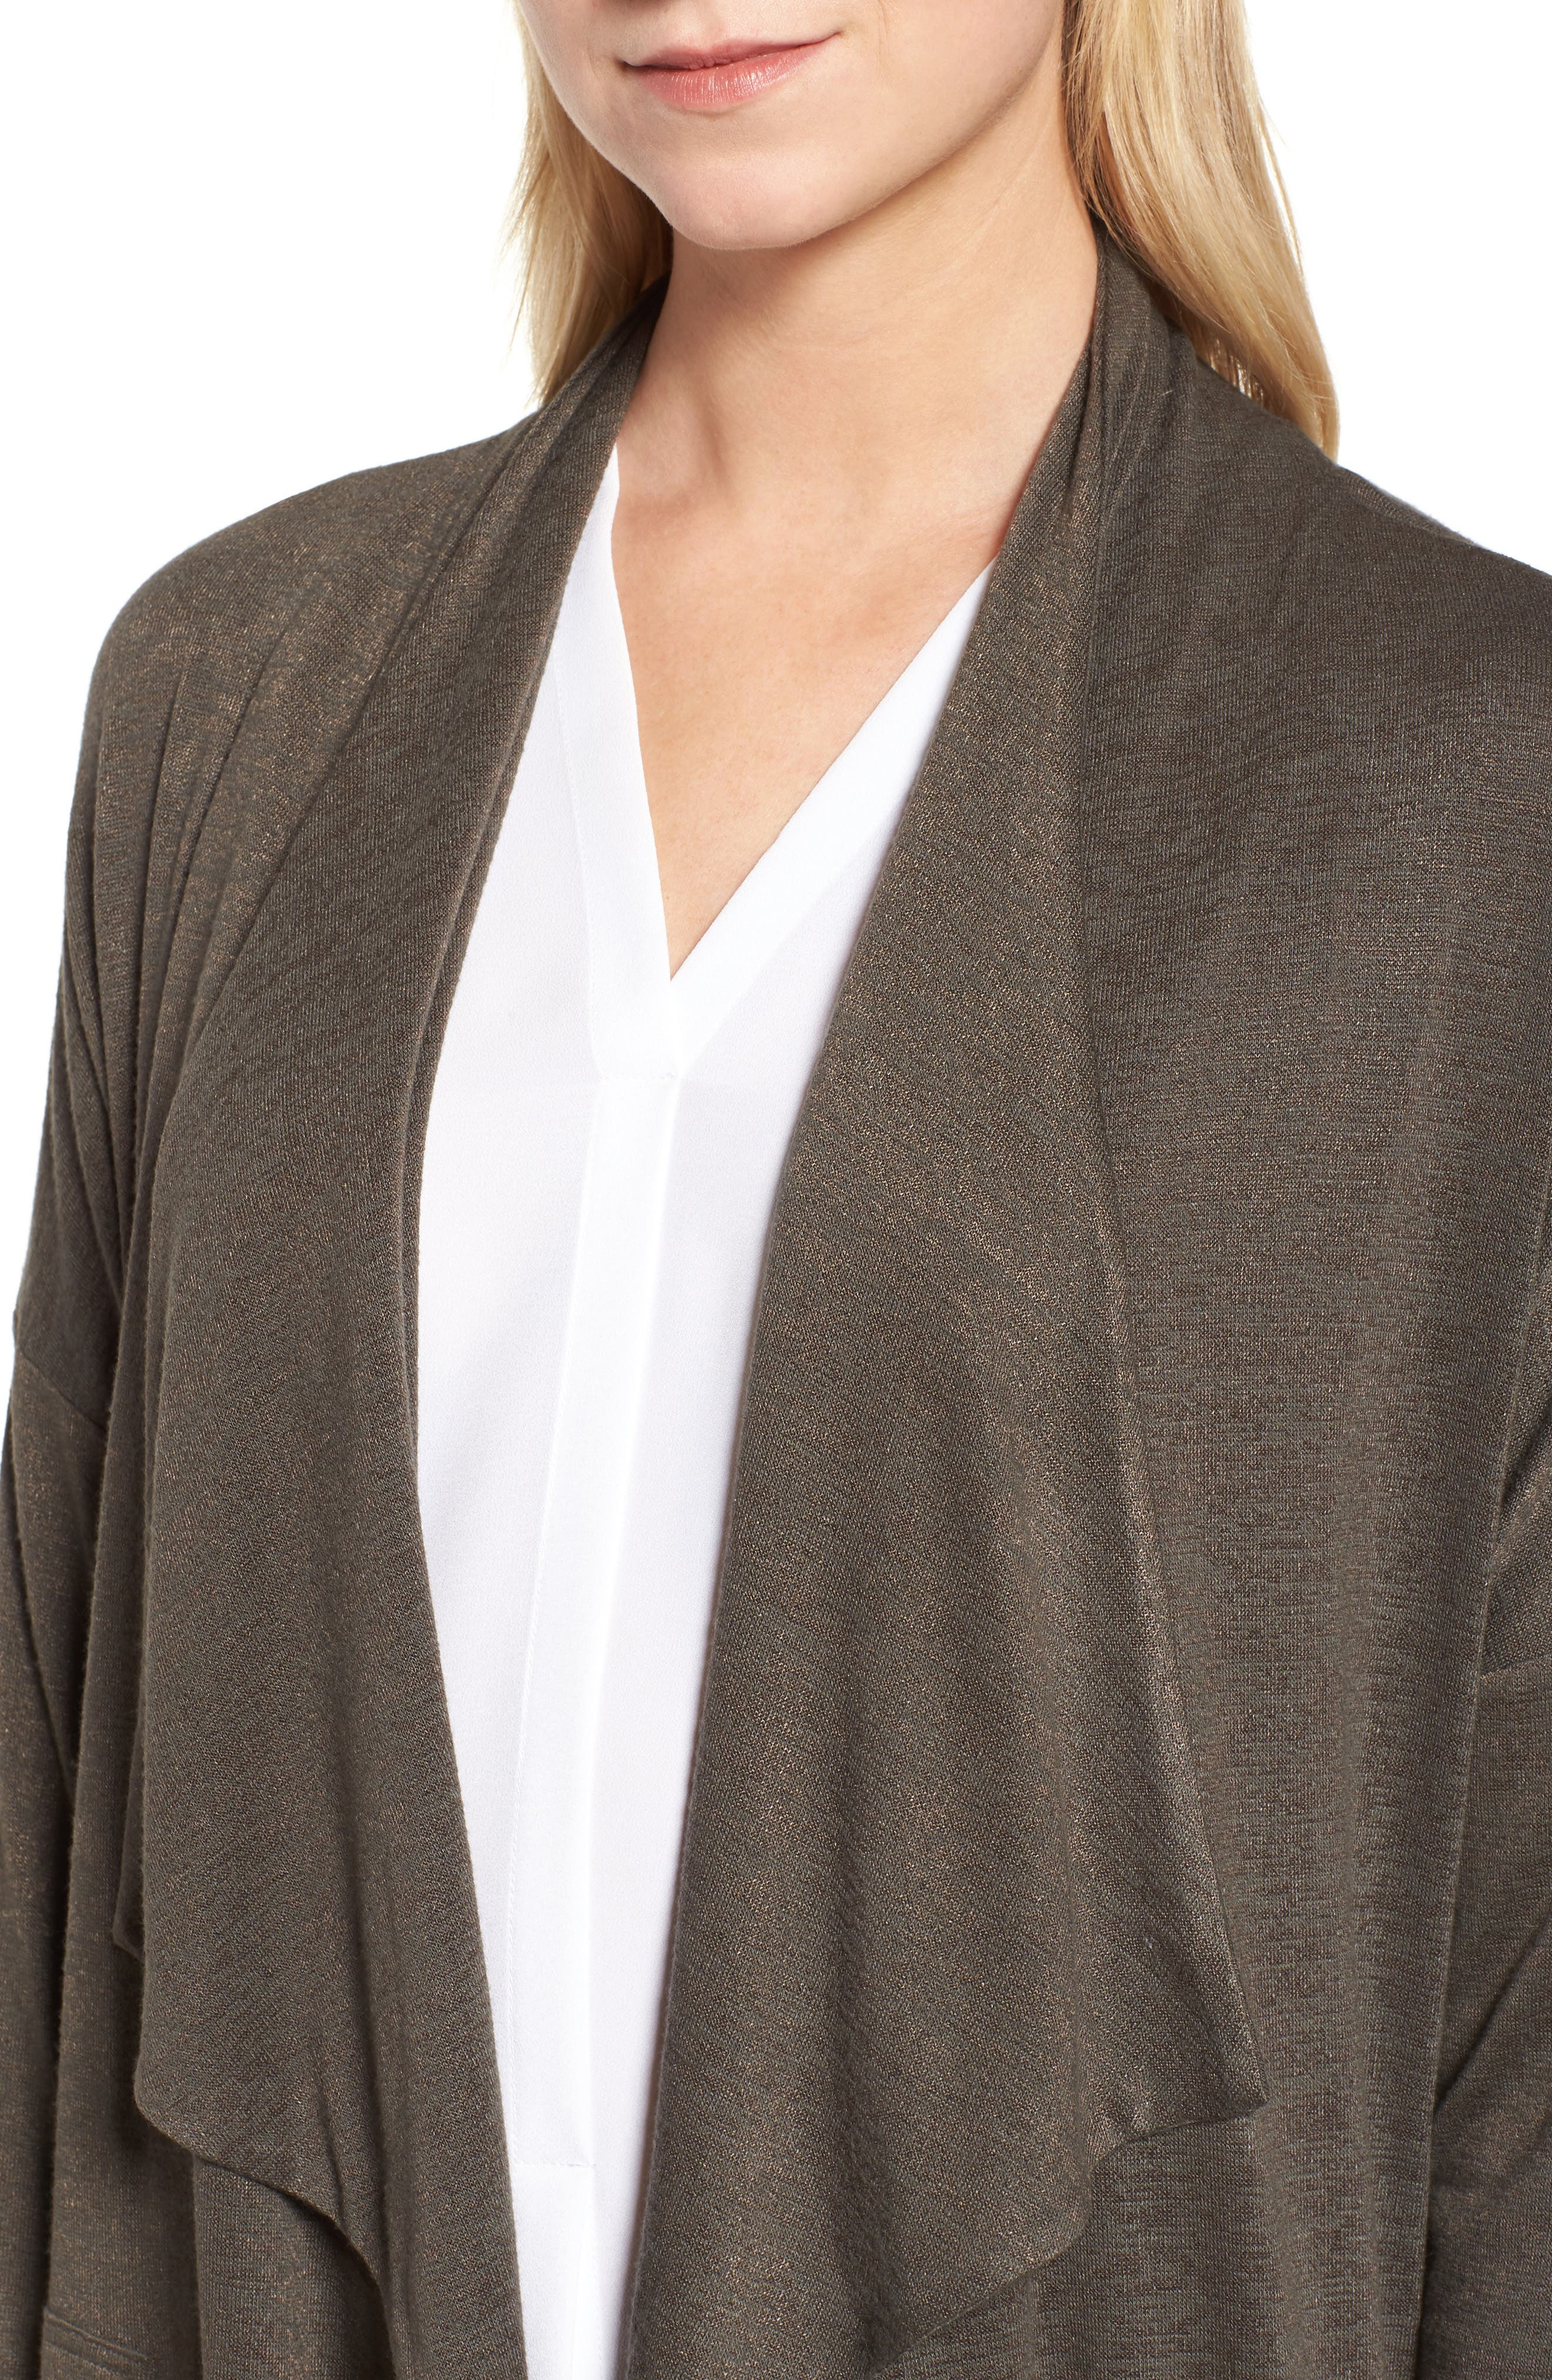 Every Occasion Drape Front Jacket,                             Alternate thumbnail 15, color,